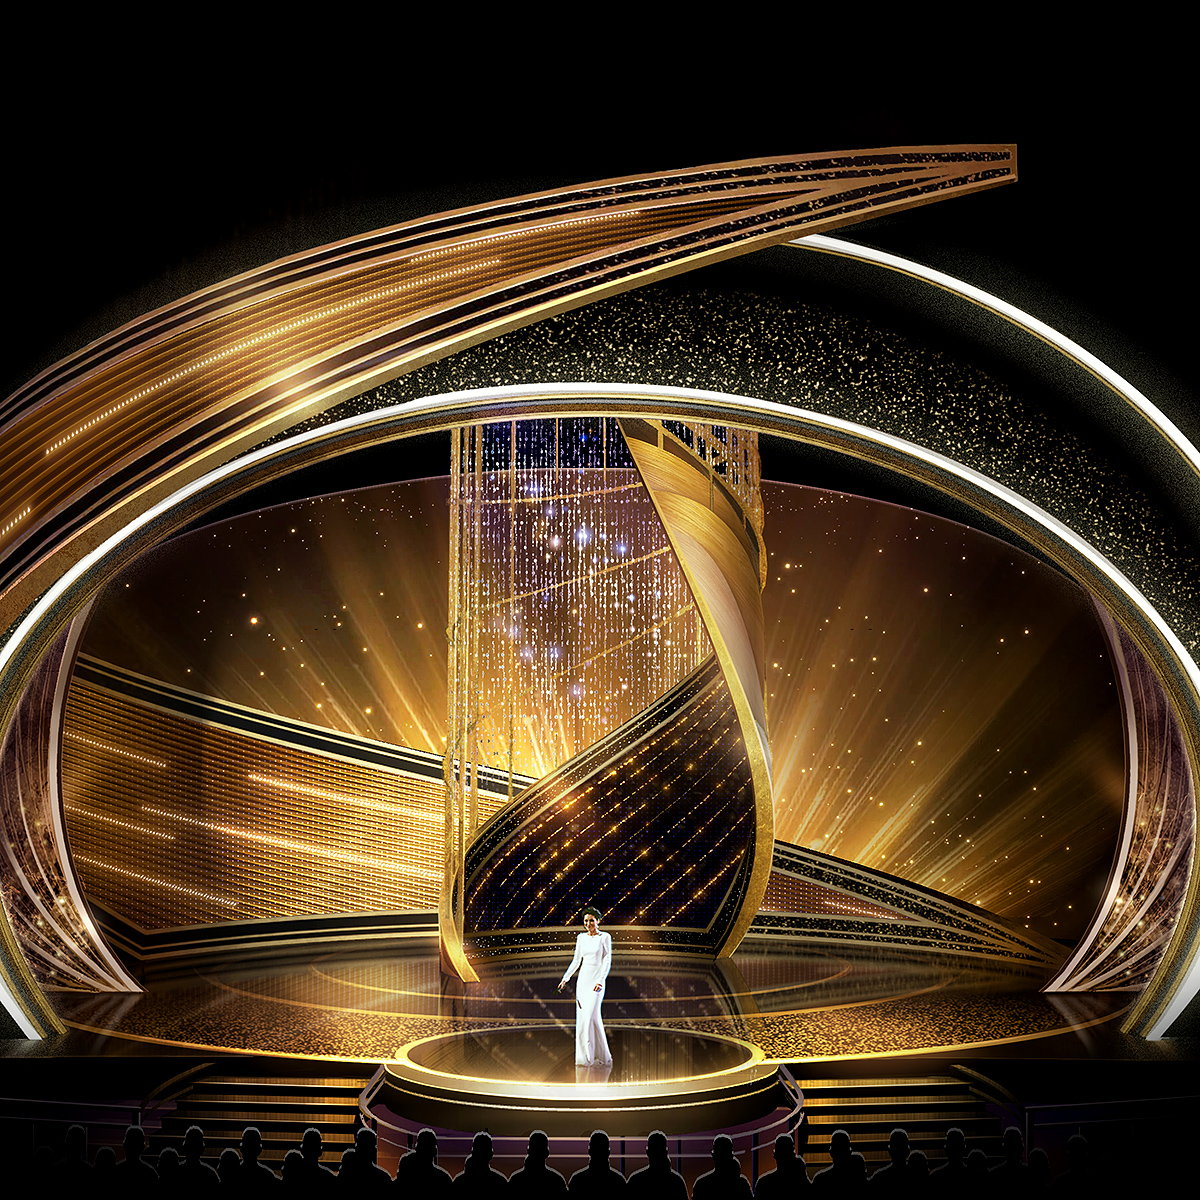 Jason Sherwood Designs 'Swirling Cyclone' Stage for 92nd Oscars